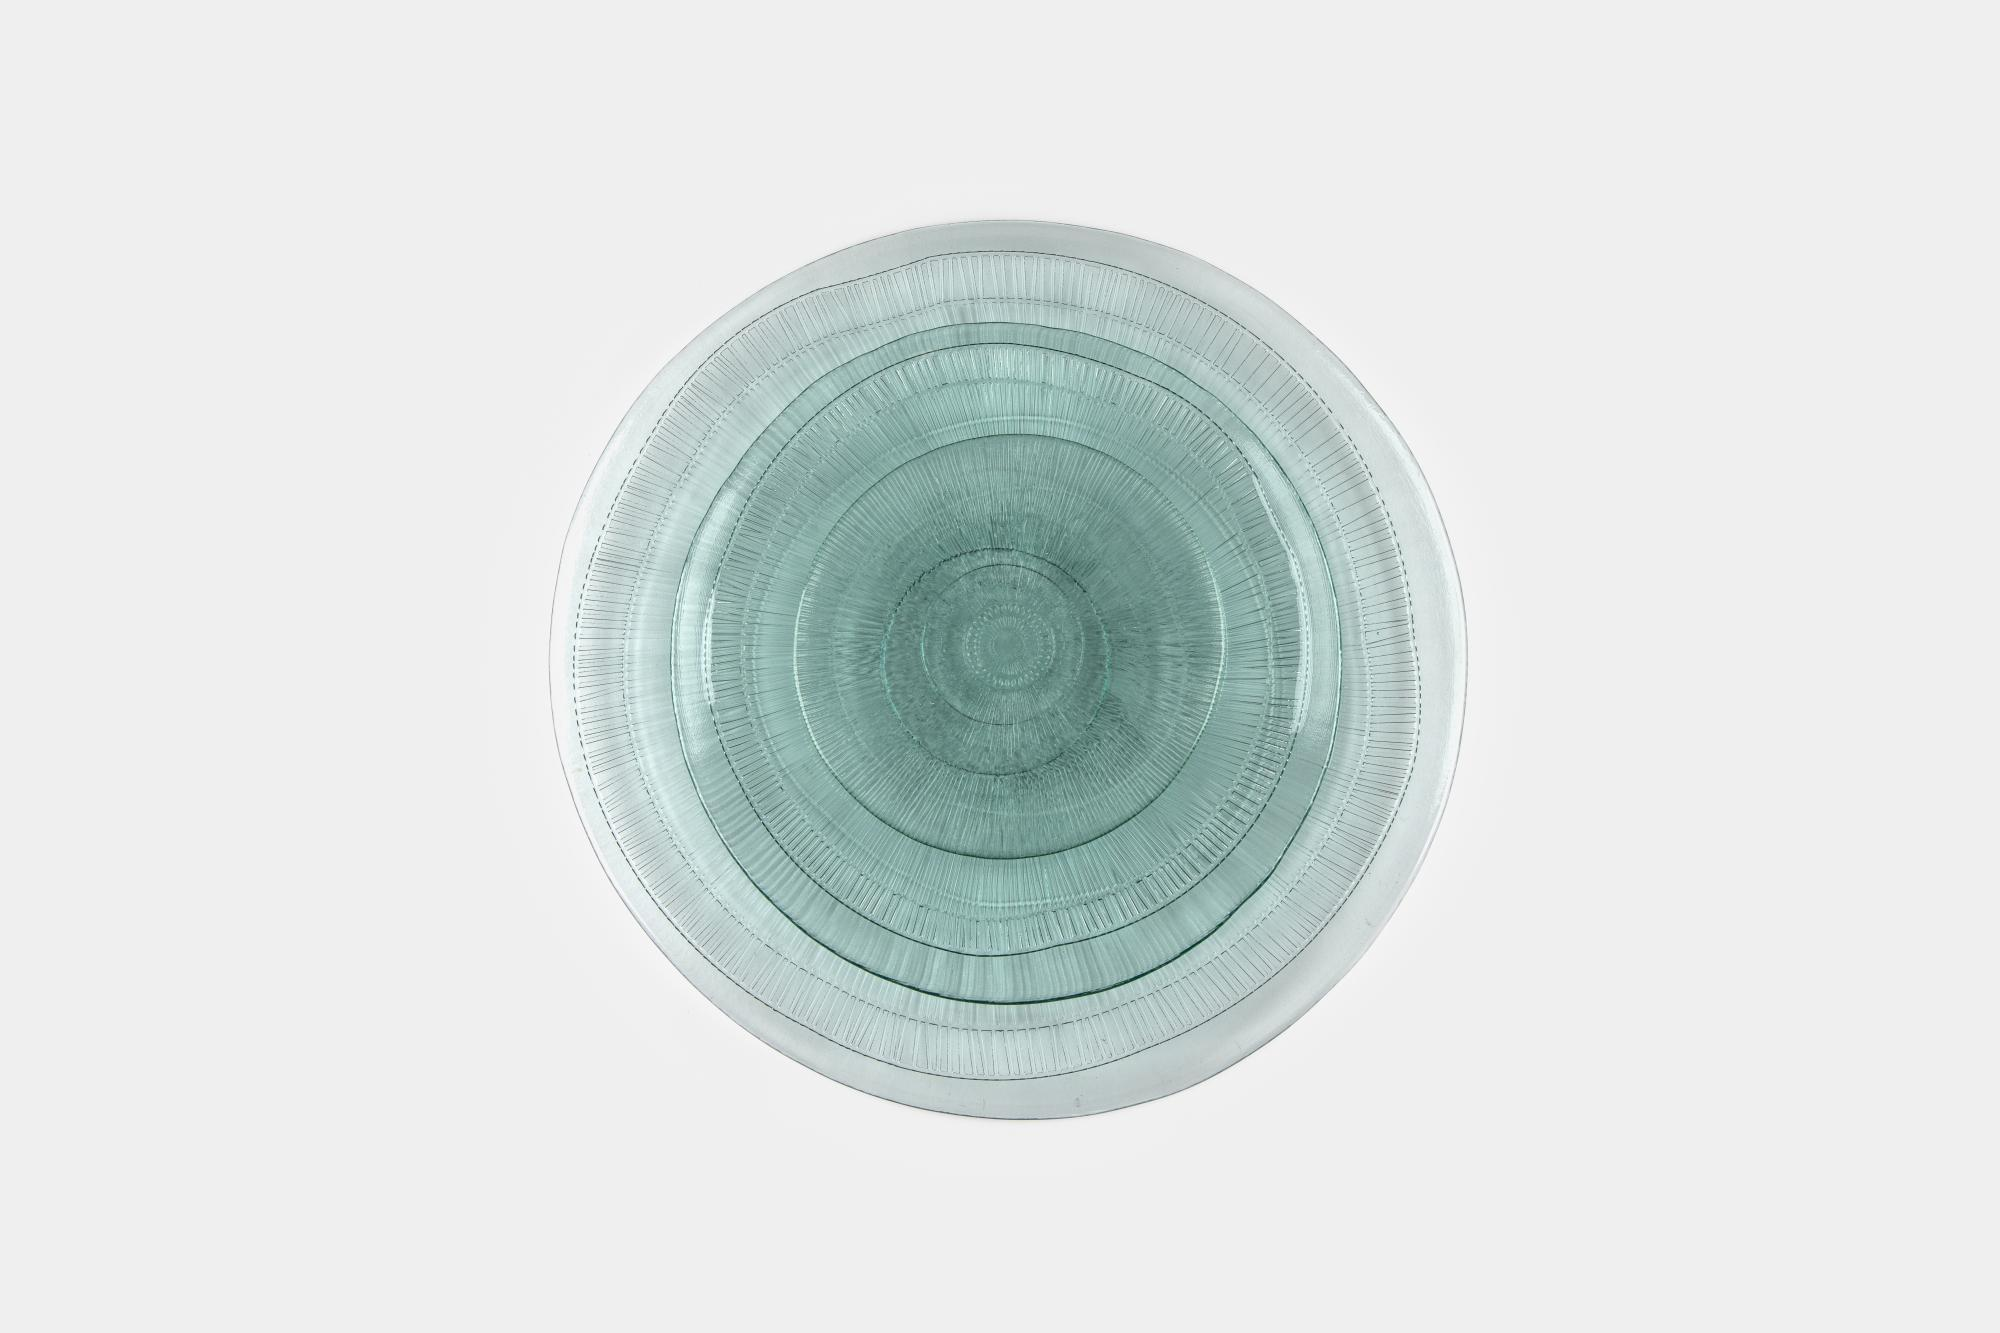 Recycled glass plate set - Image 1